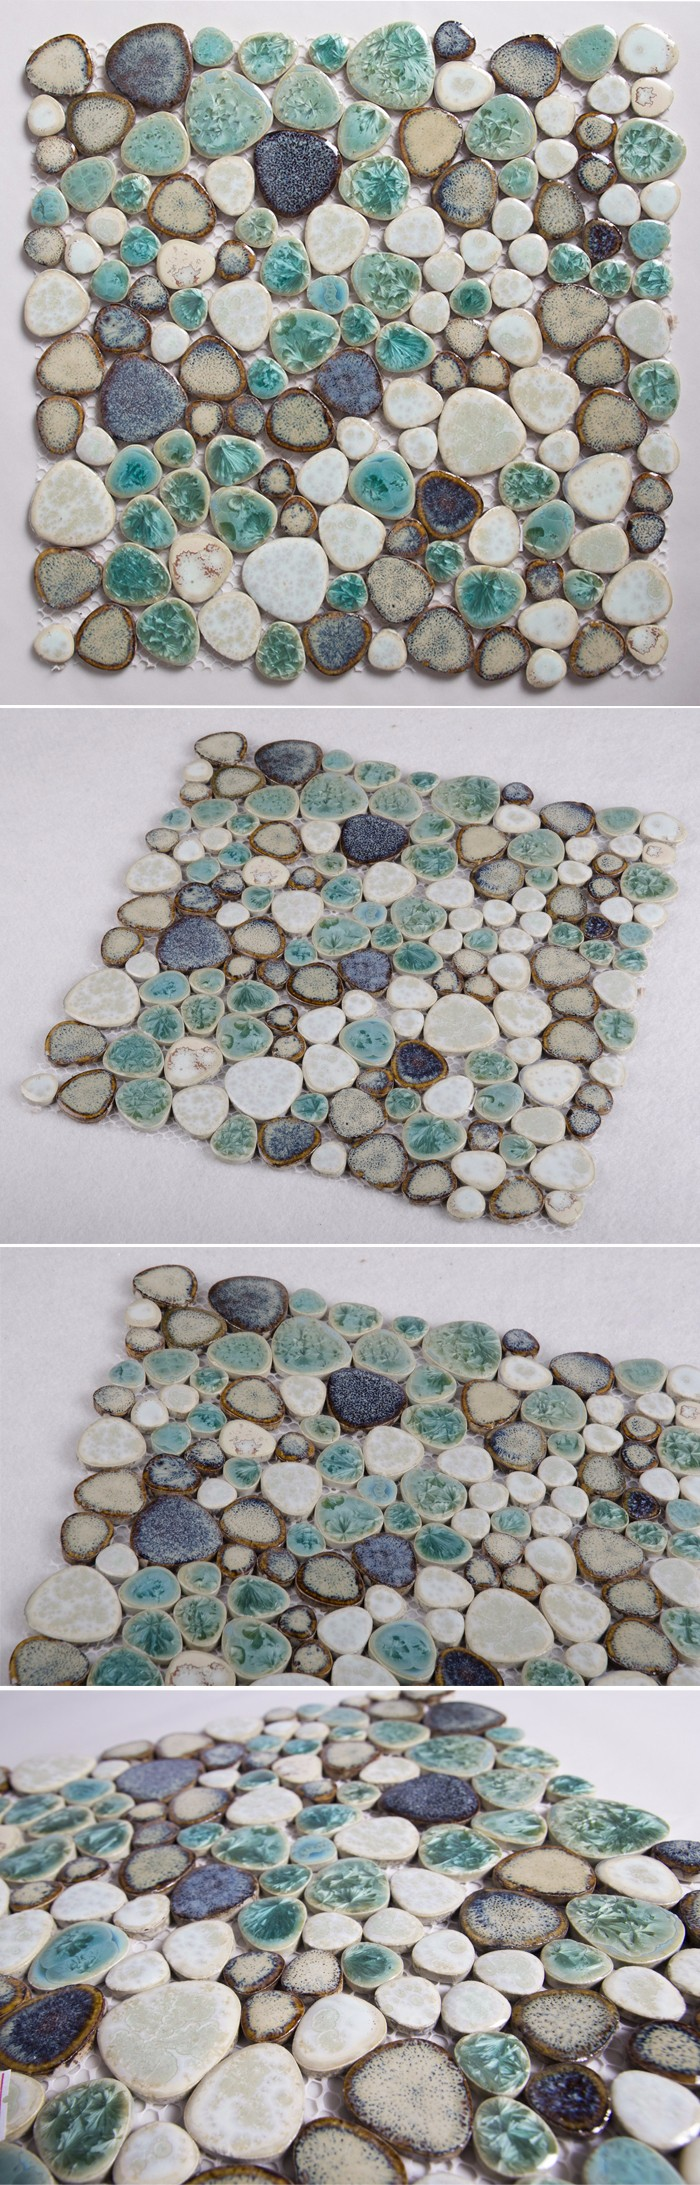 Cash Pool Shell Tm1005 Mosaic Floor Pattern/abalone Tile/shell Mosaic Tile